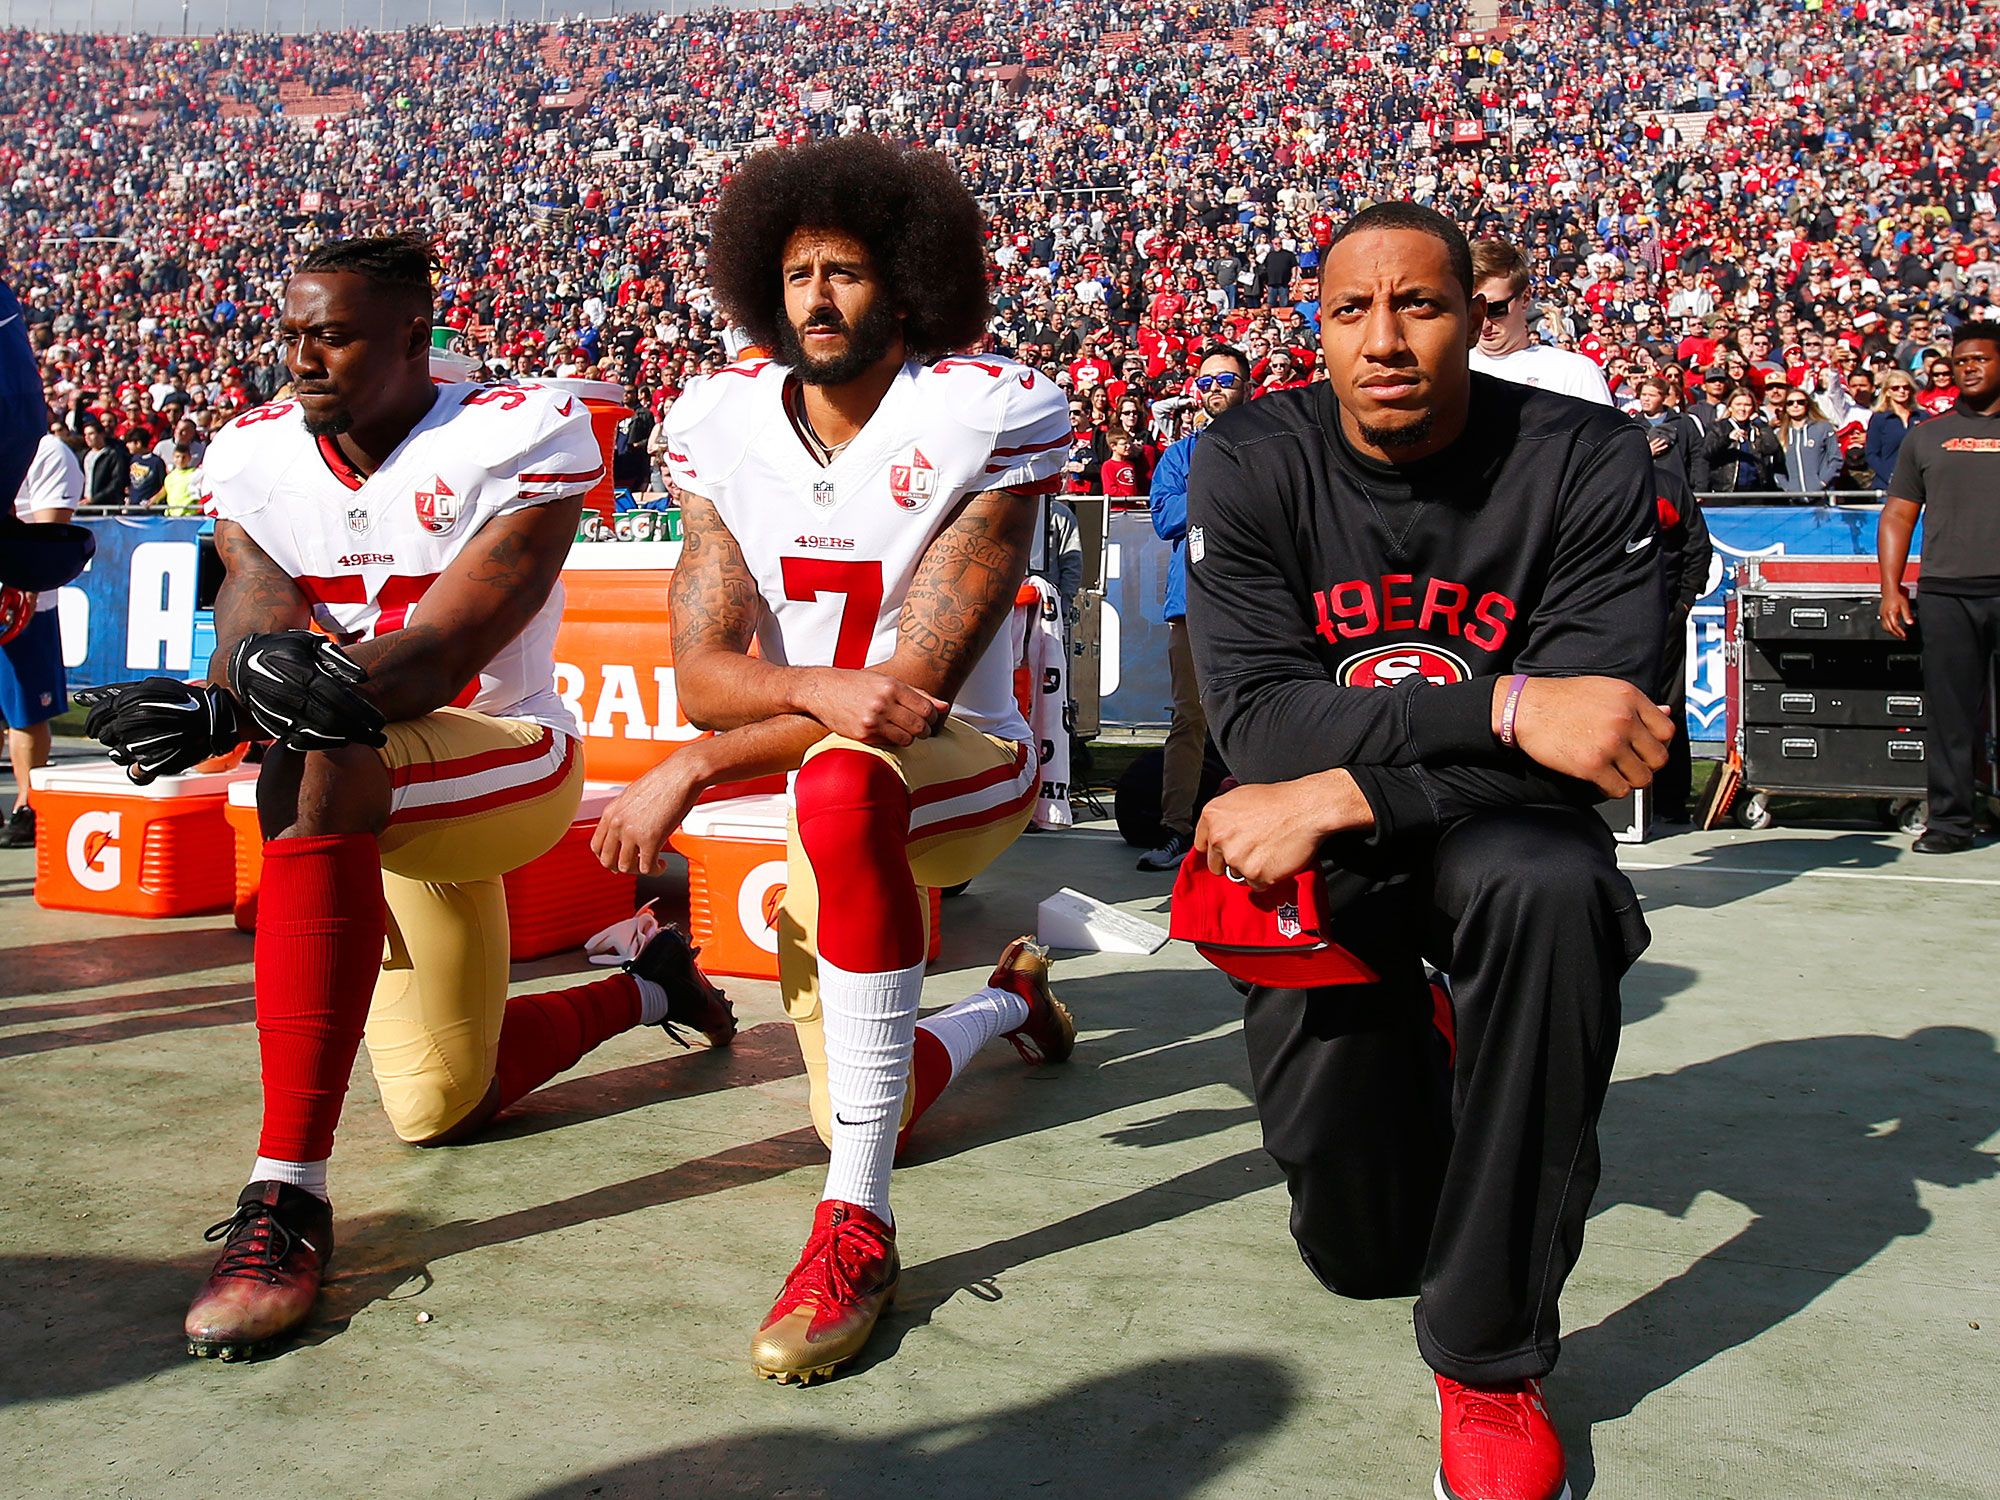 Colin Kaepernick accepts SI award, vows to continue activism